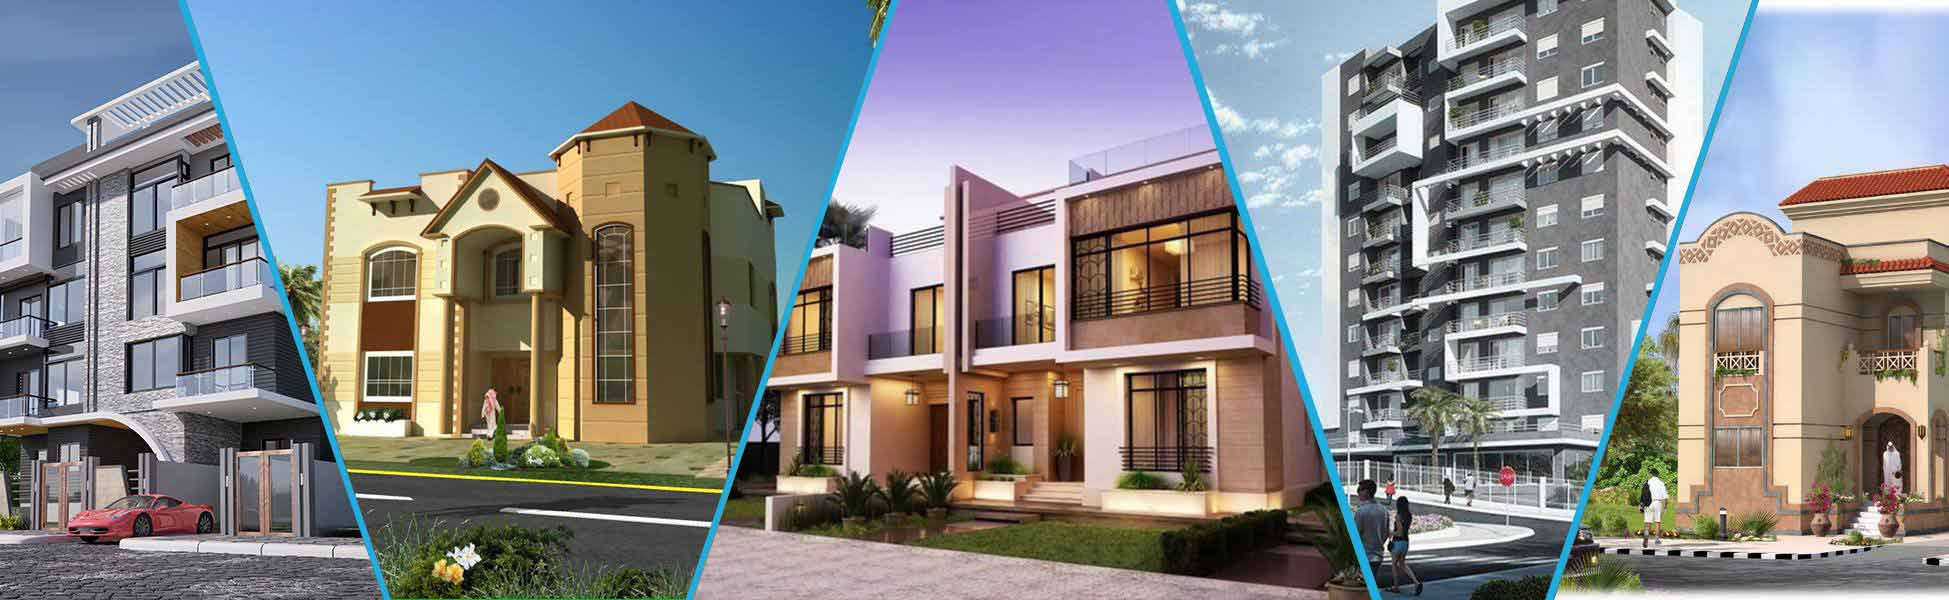 About us – Arzaq Realestate